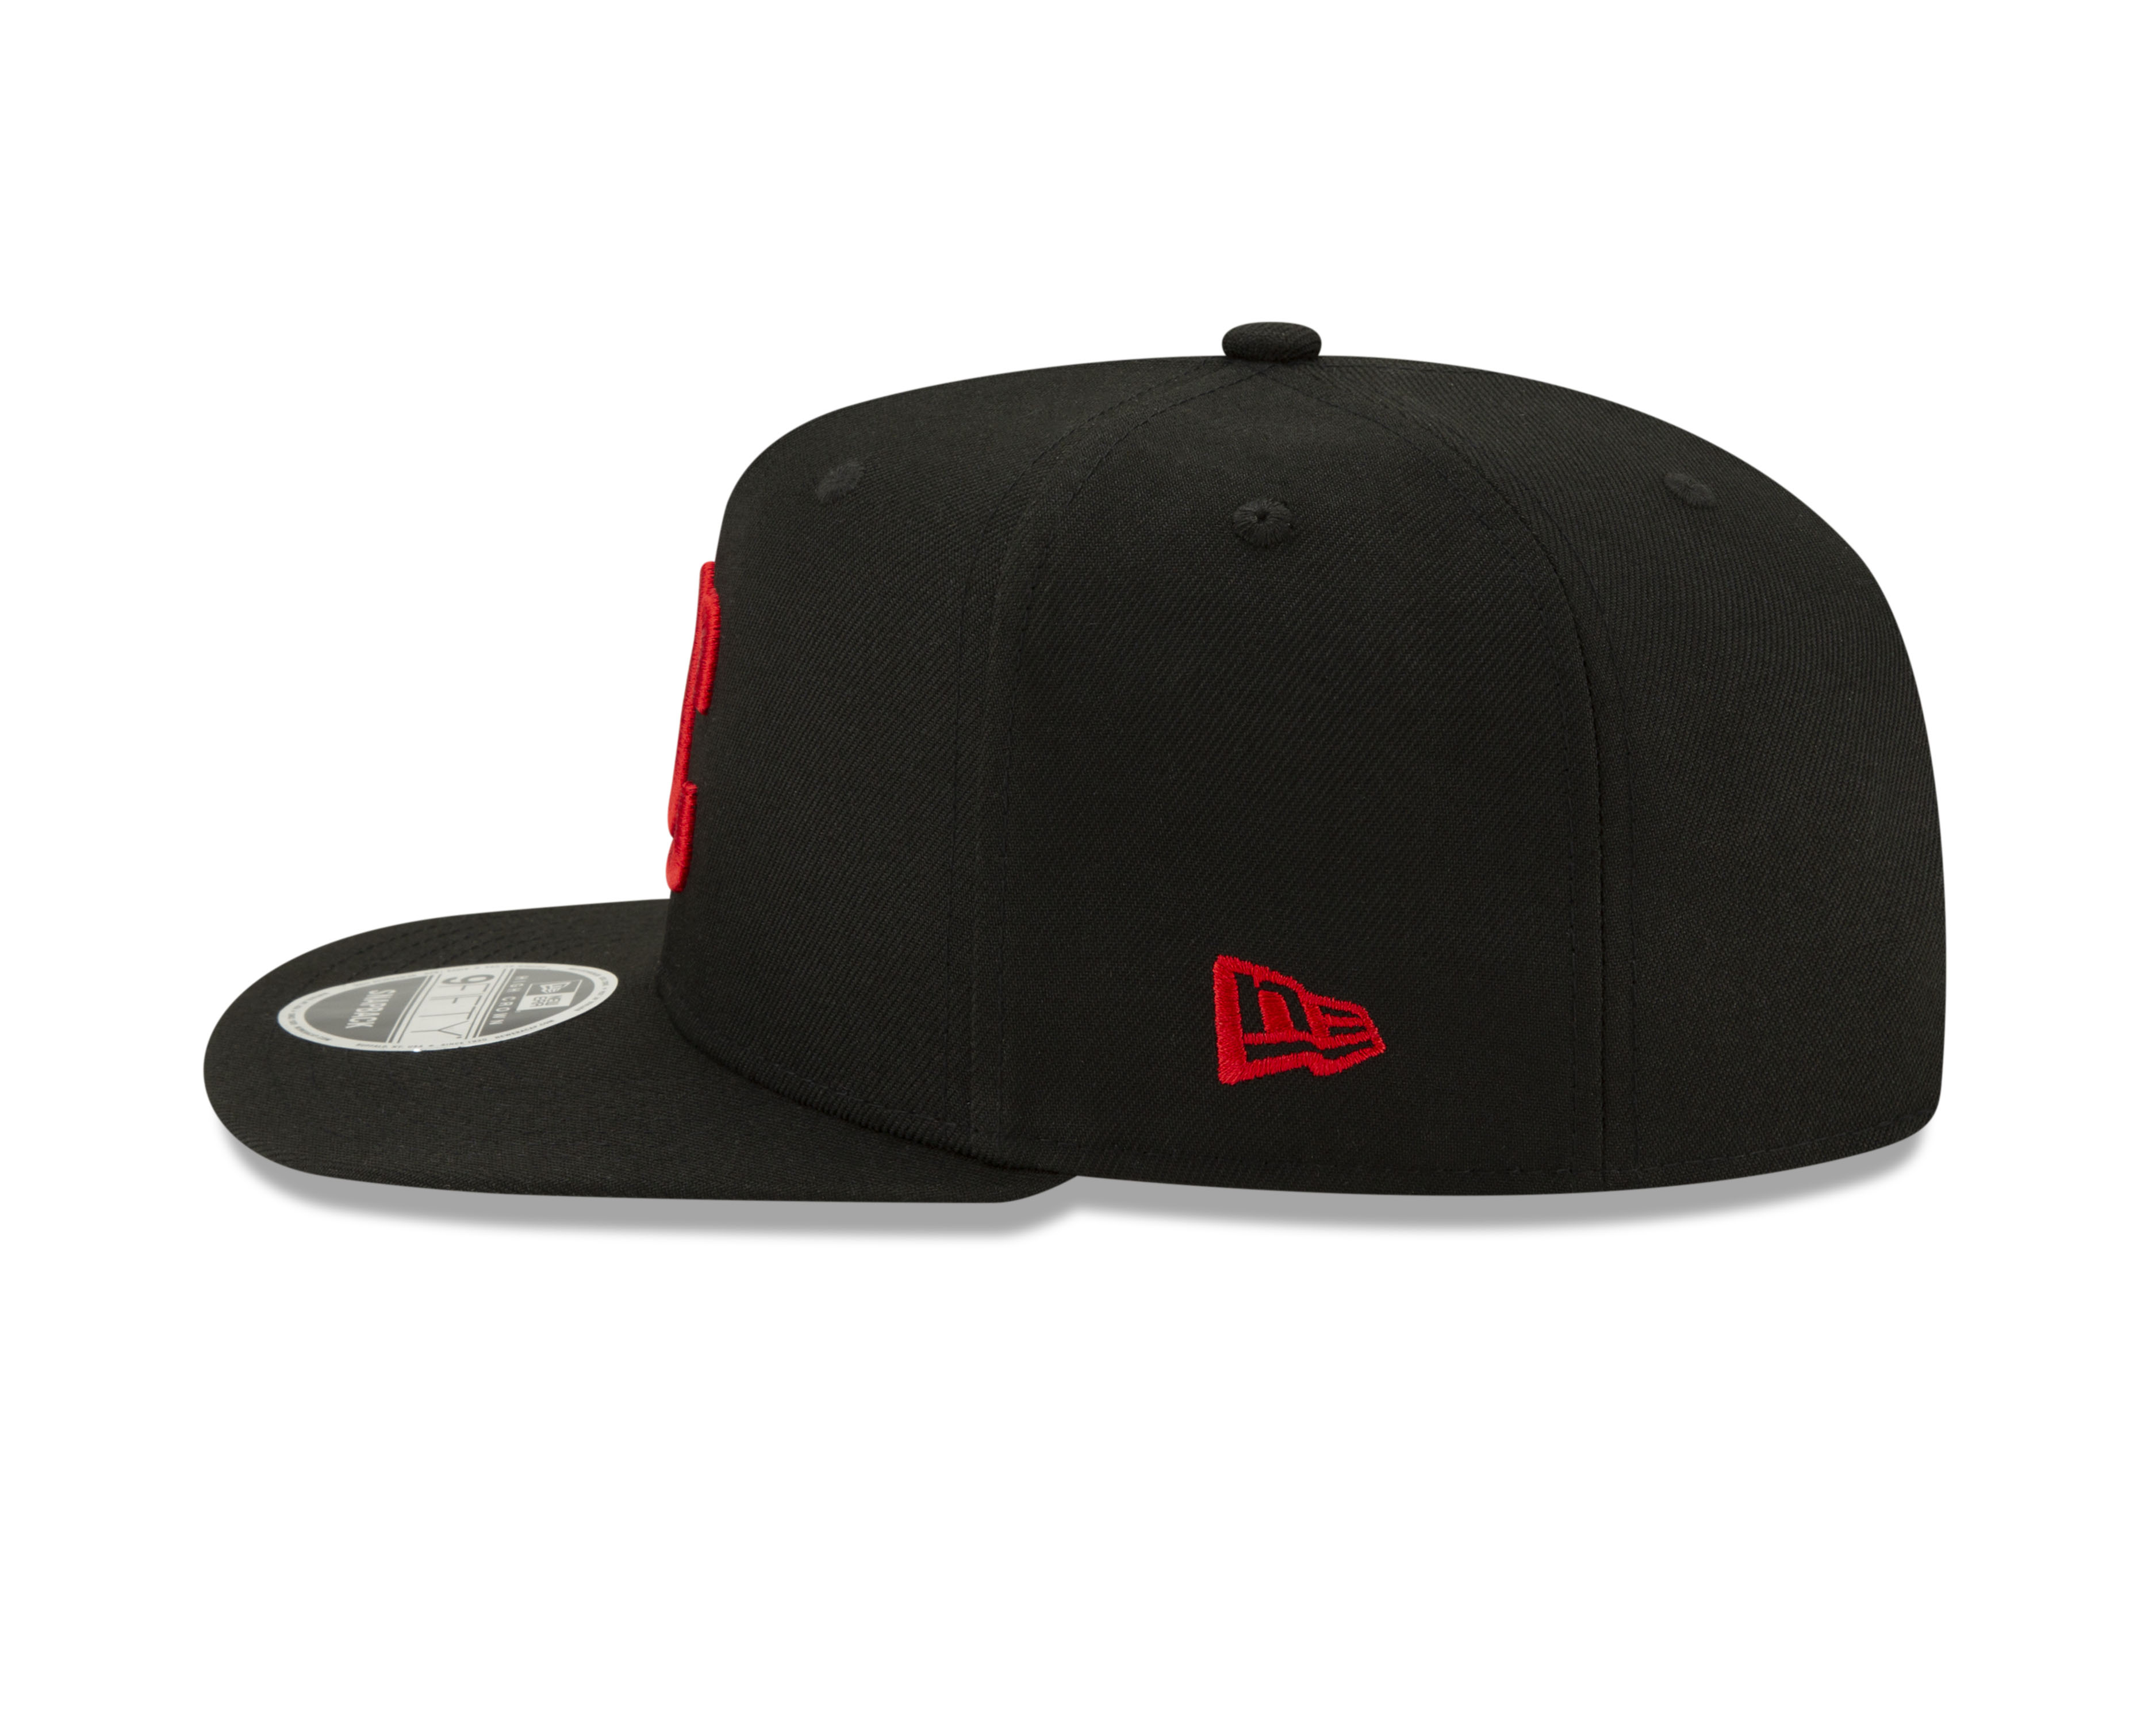 Meek Mill Dreamchasers - Lids Exclusive | Lids® Blog